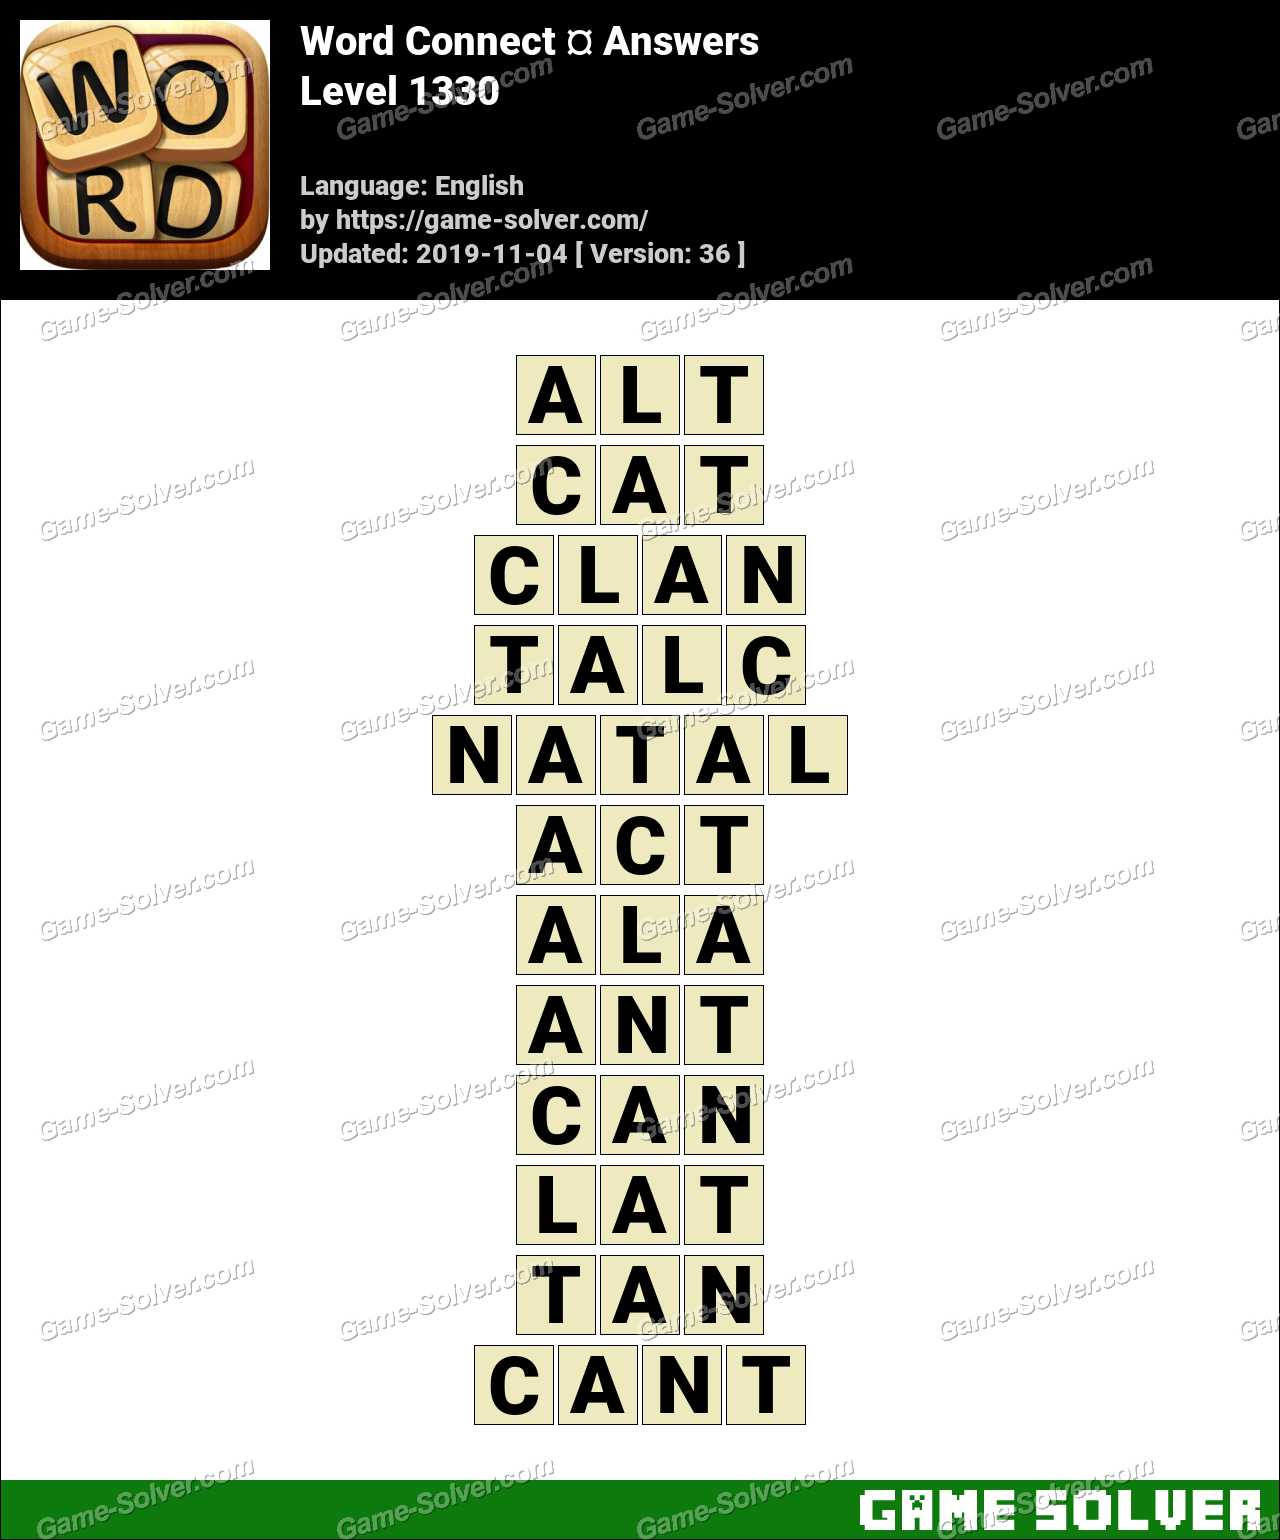 Word Connect Level 1330 Answers